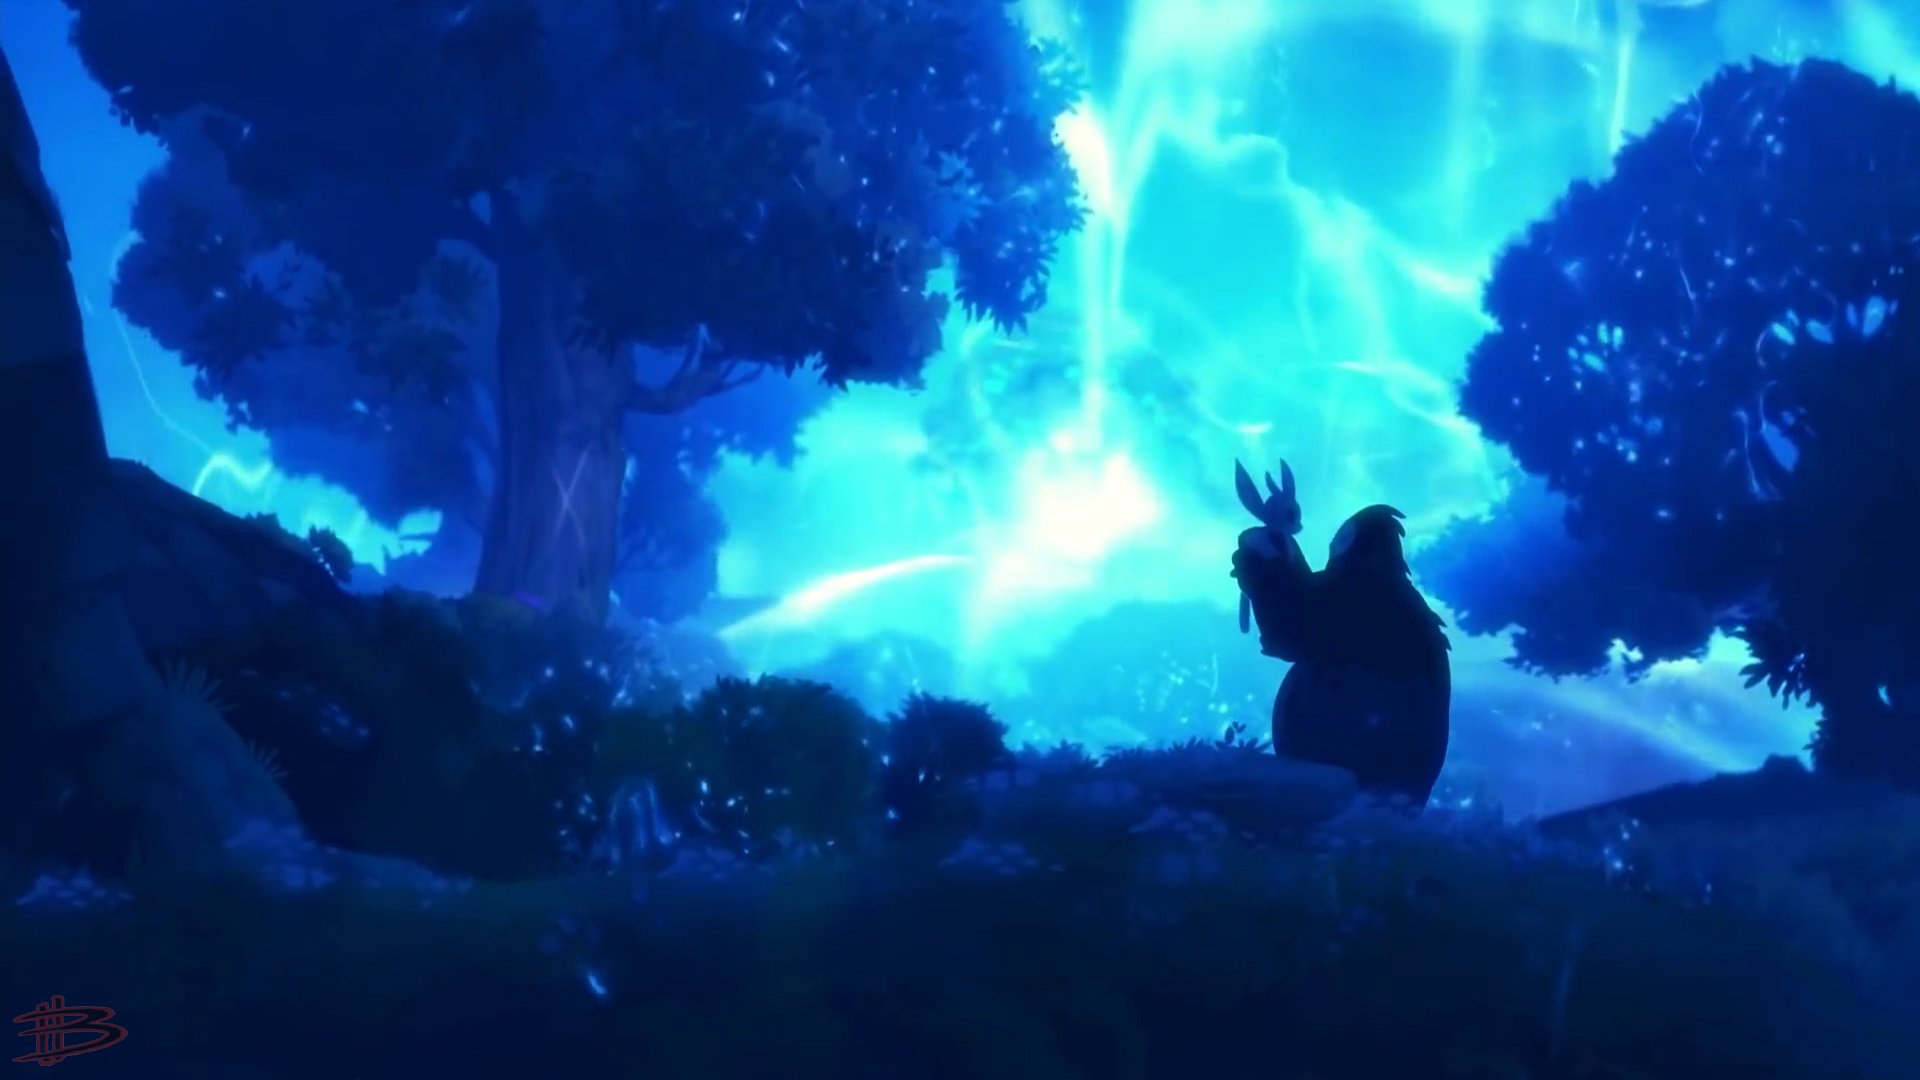 Ori And The Blind Forest Wallpapers High Quality ...